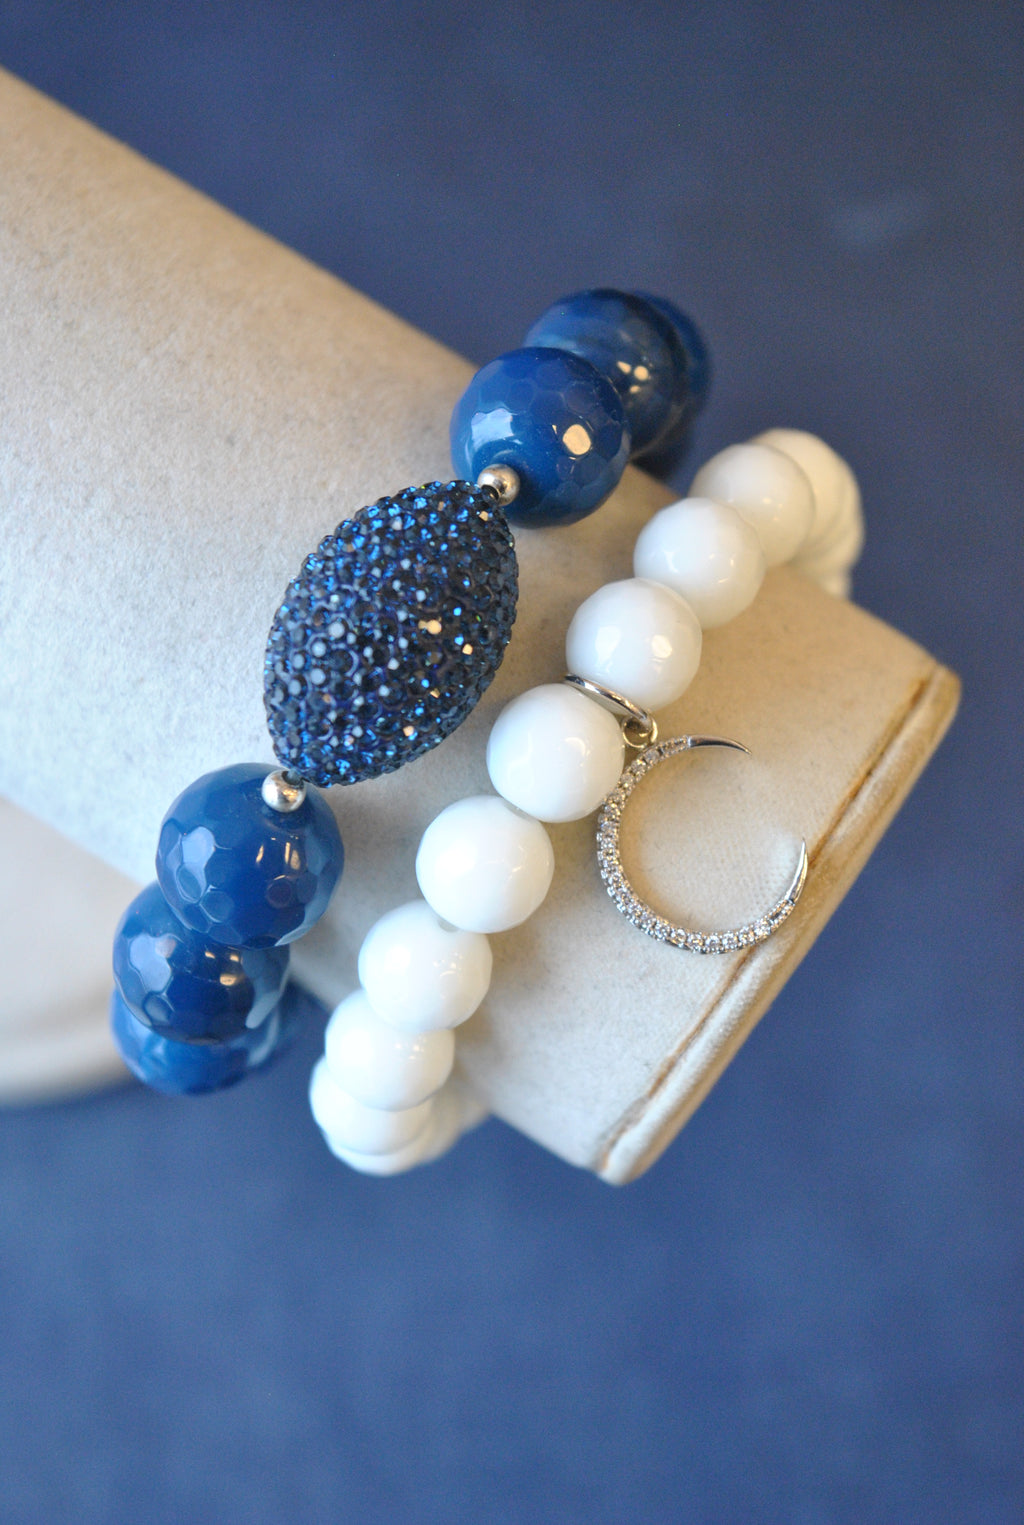 BLUE AGATE AND WHITE ONYX WITH CHARM STRETCHY BRACELET SET